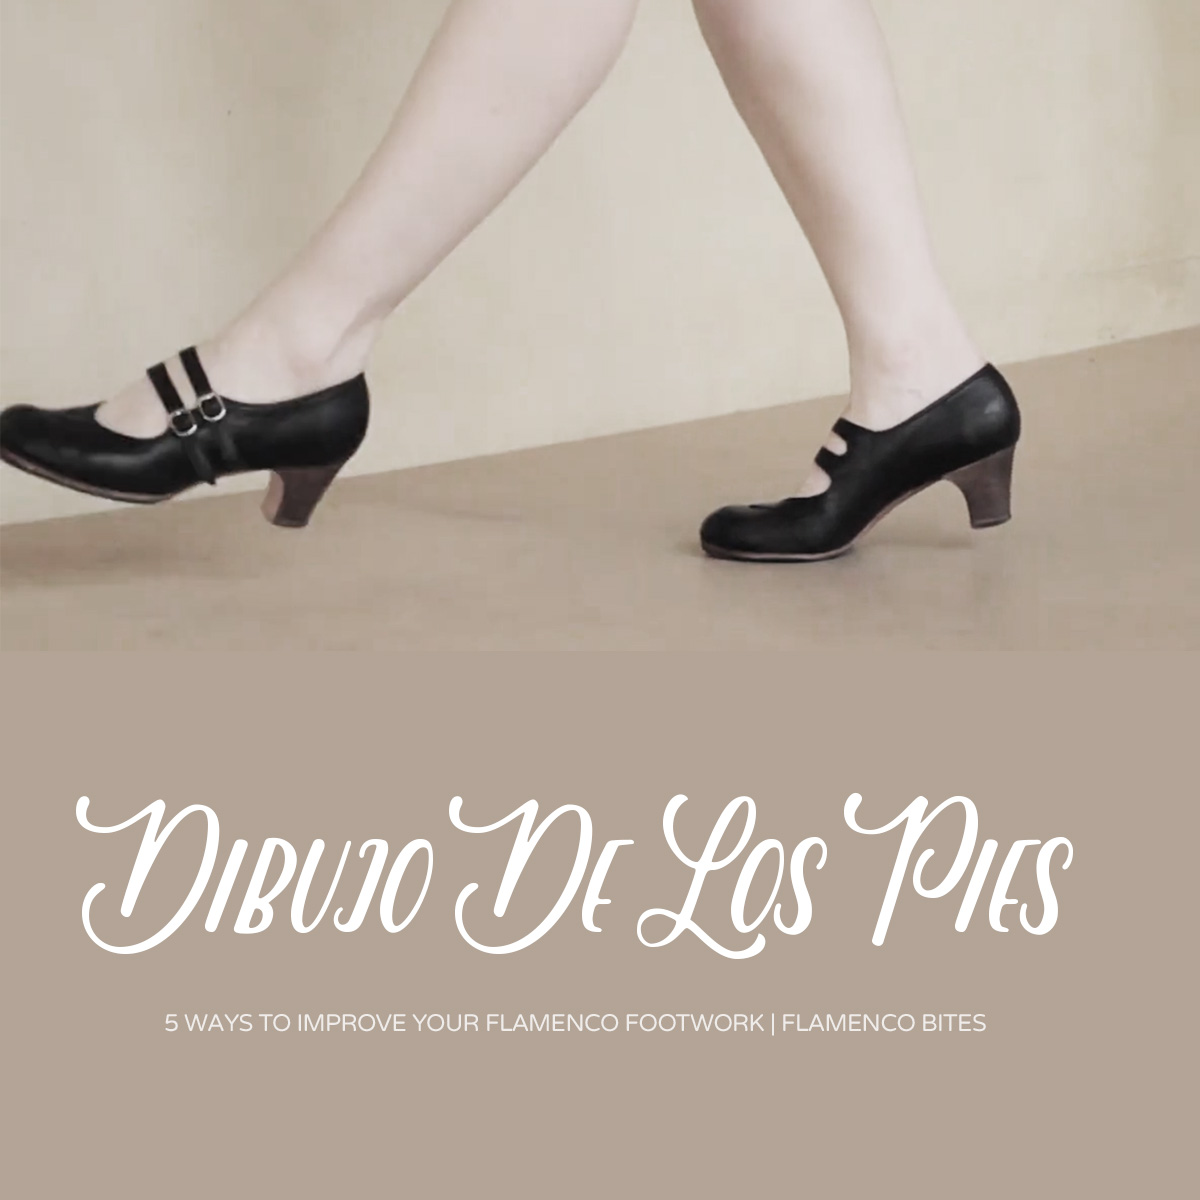 Think about the picture of your feet (dibujo de los pies) when practicing flamenco footwork   www.flamencobites.com